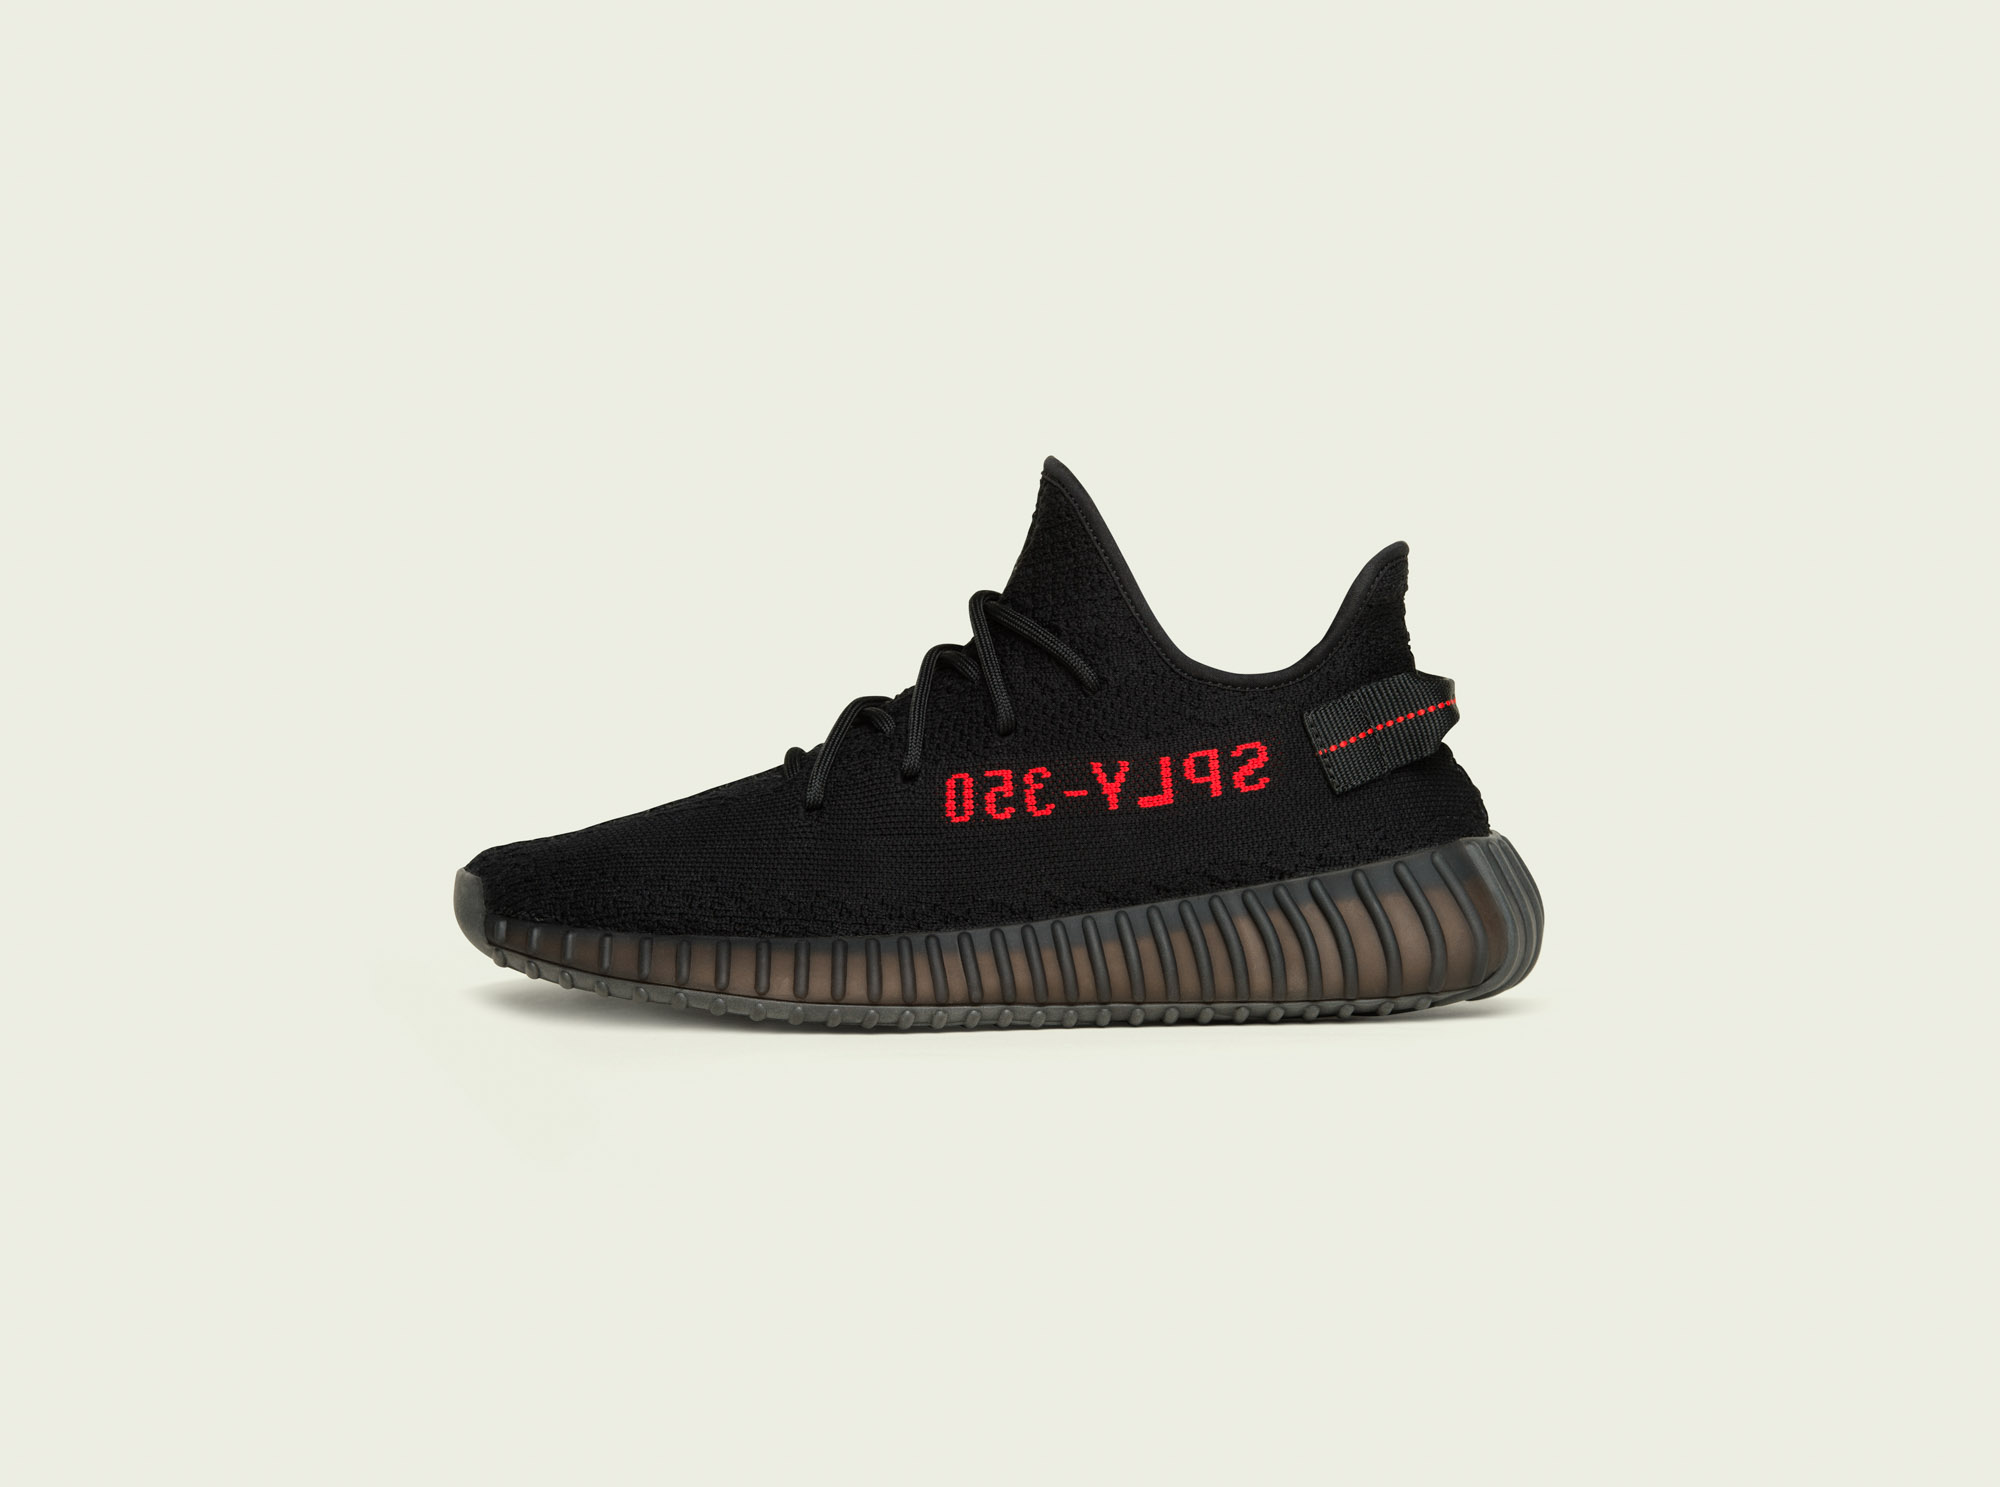 adidas Yeezy Boost 350 V2 Black Red CP9652 3